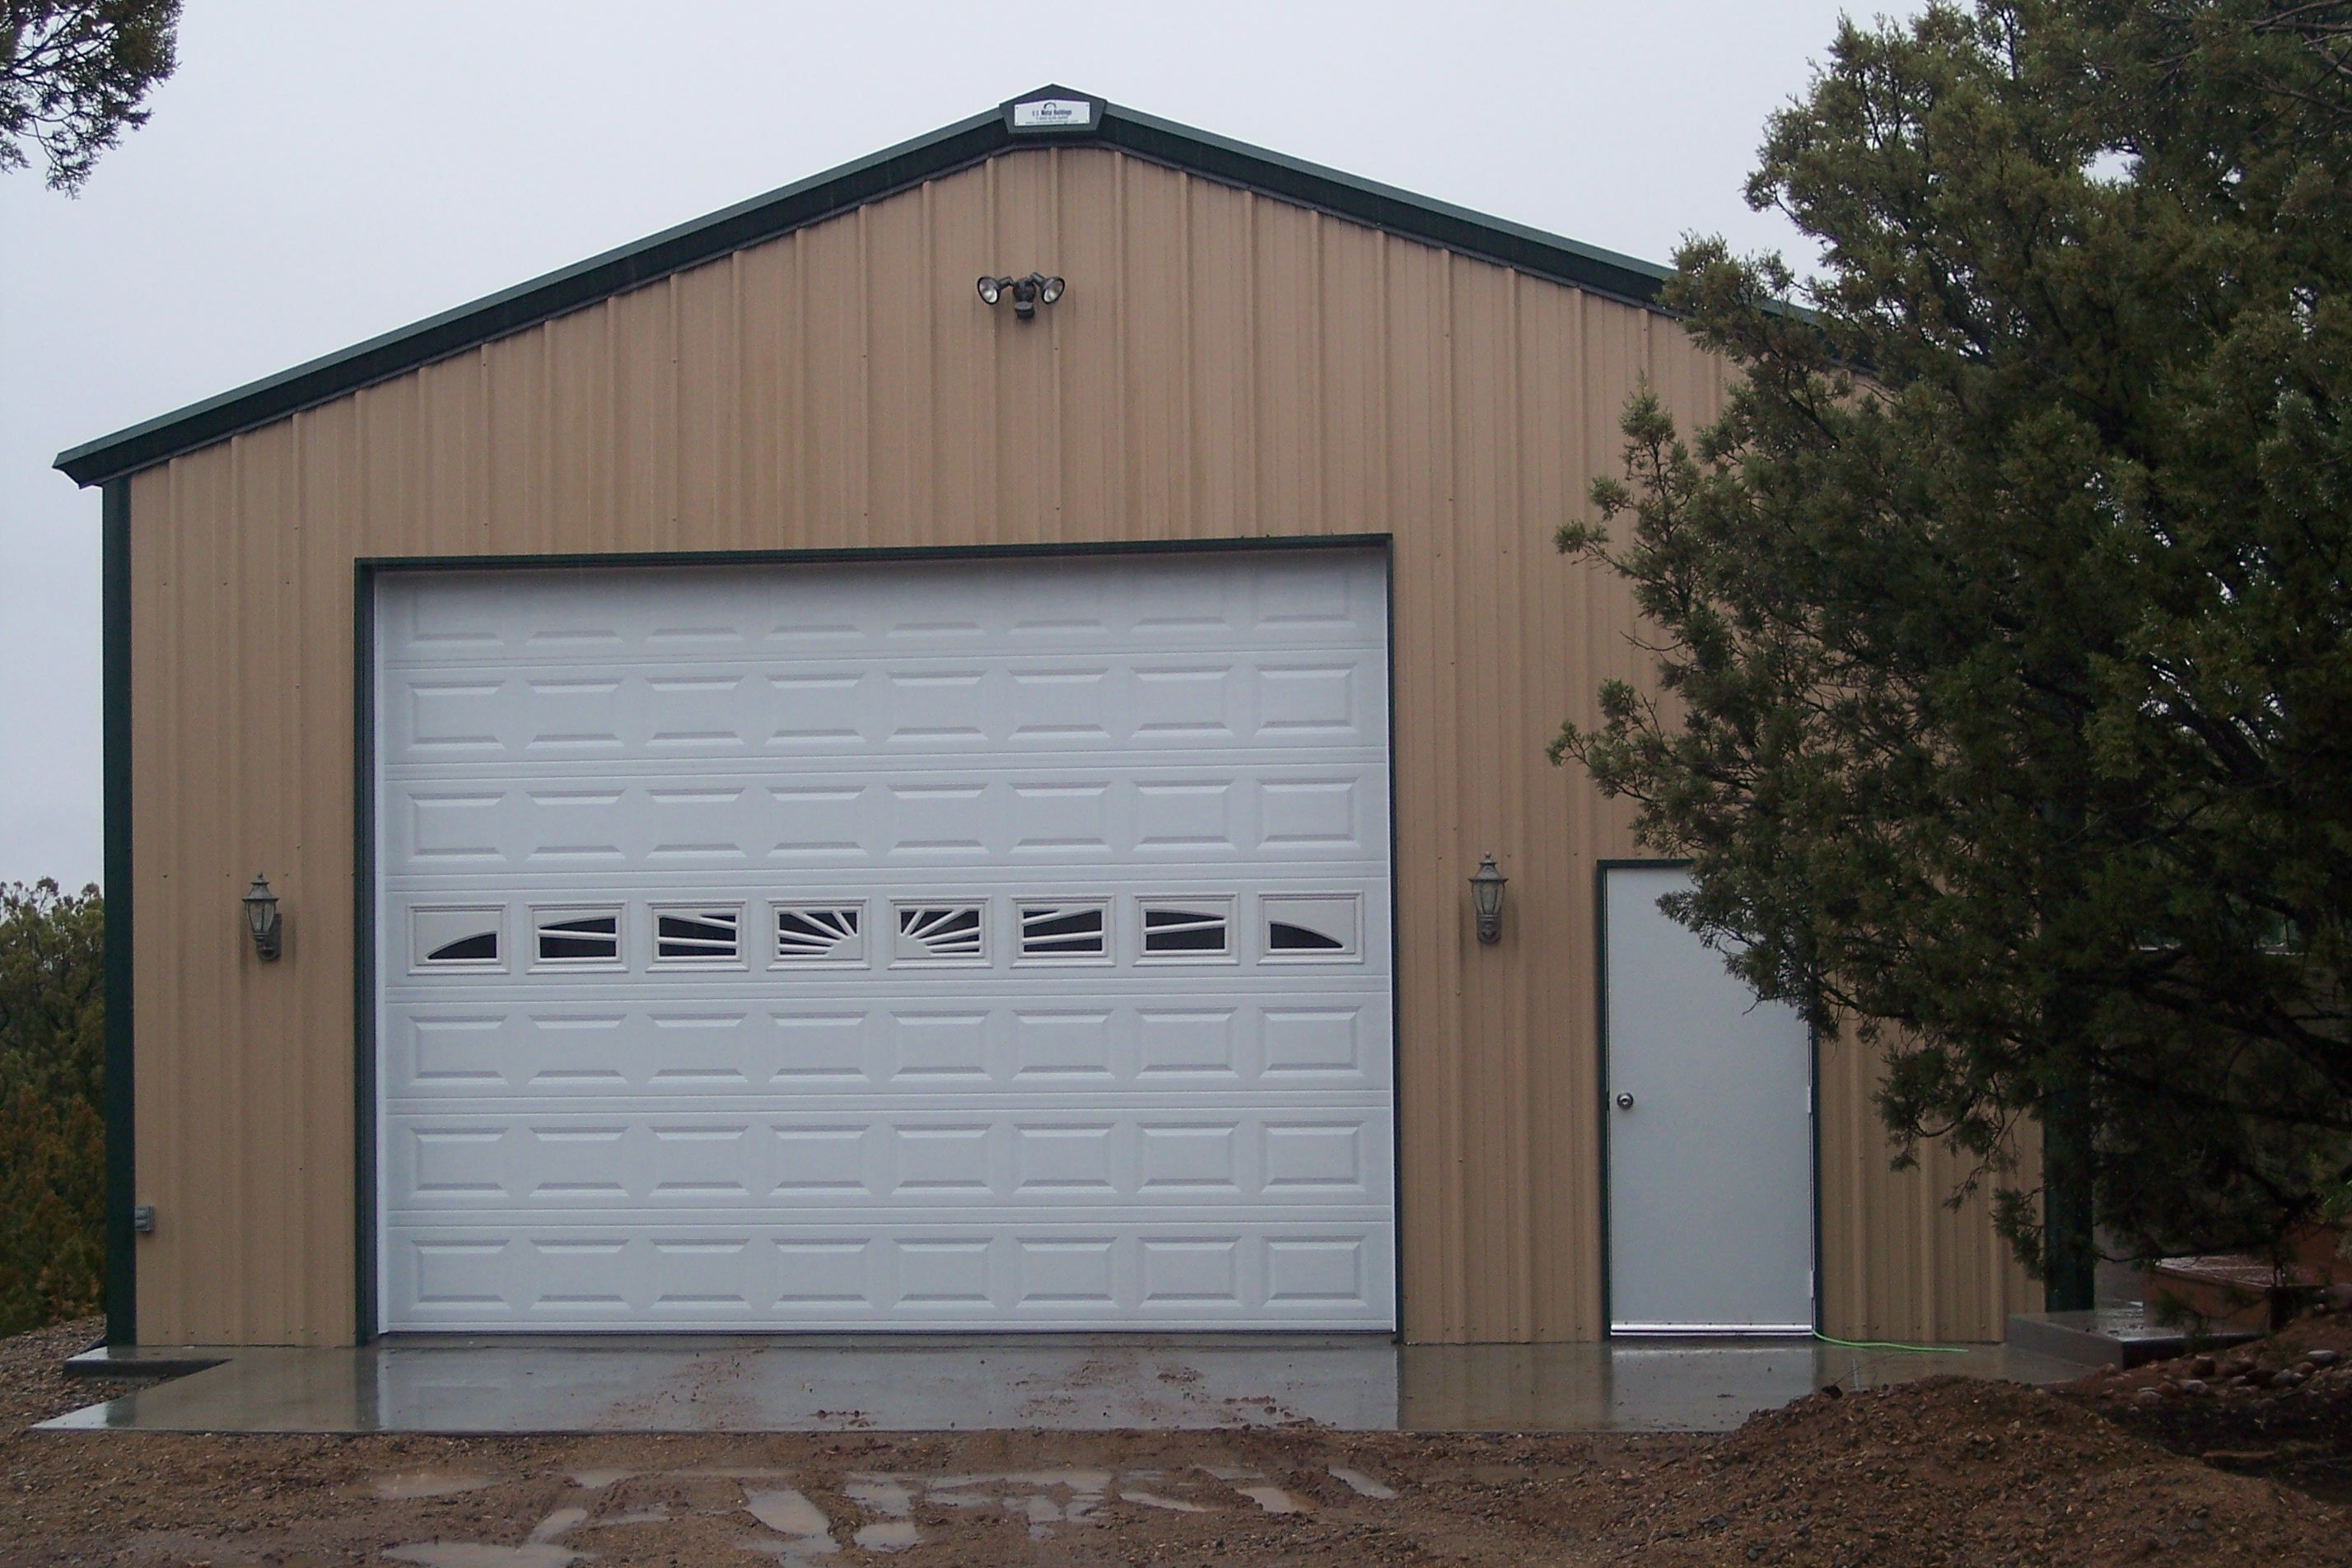 asyfreedomwalk steel metal cool style kits idea carport design temporary carports com garage